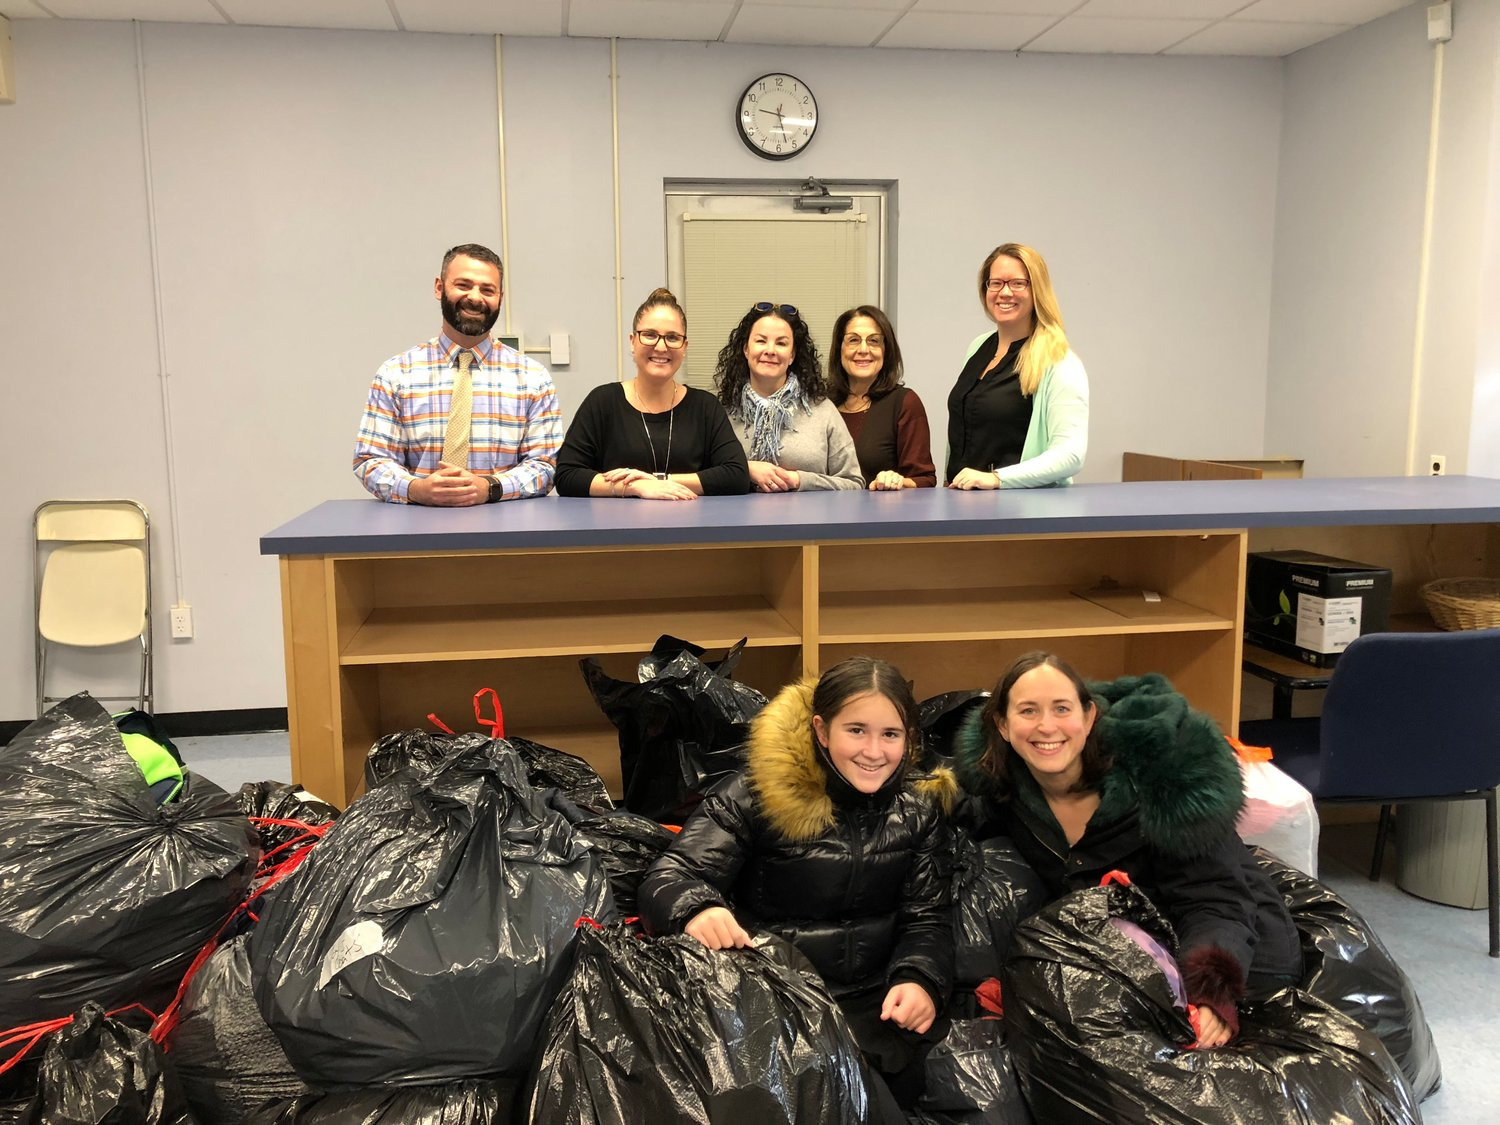 Bags filled with coats were collected and sorted at Lawrence Middle School. Standing from left assistant middle school principals Brett Kornblum and Kristin Mcloughlin, district speech pathologist Danielle Aronovitz, middle school social worker Wendy Grand and Assistant Middle School Principal Kathleen Dodd. Goldie Kuflik and her mother, Yaffa Kuflik, are among the bags.